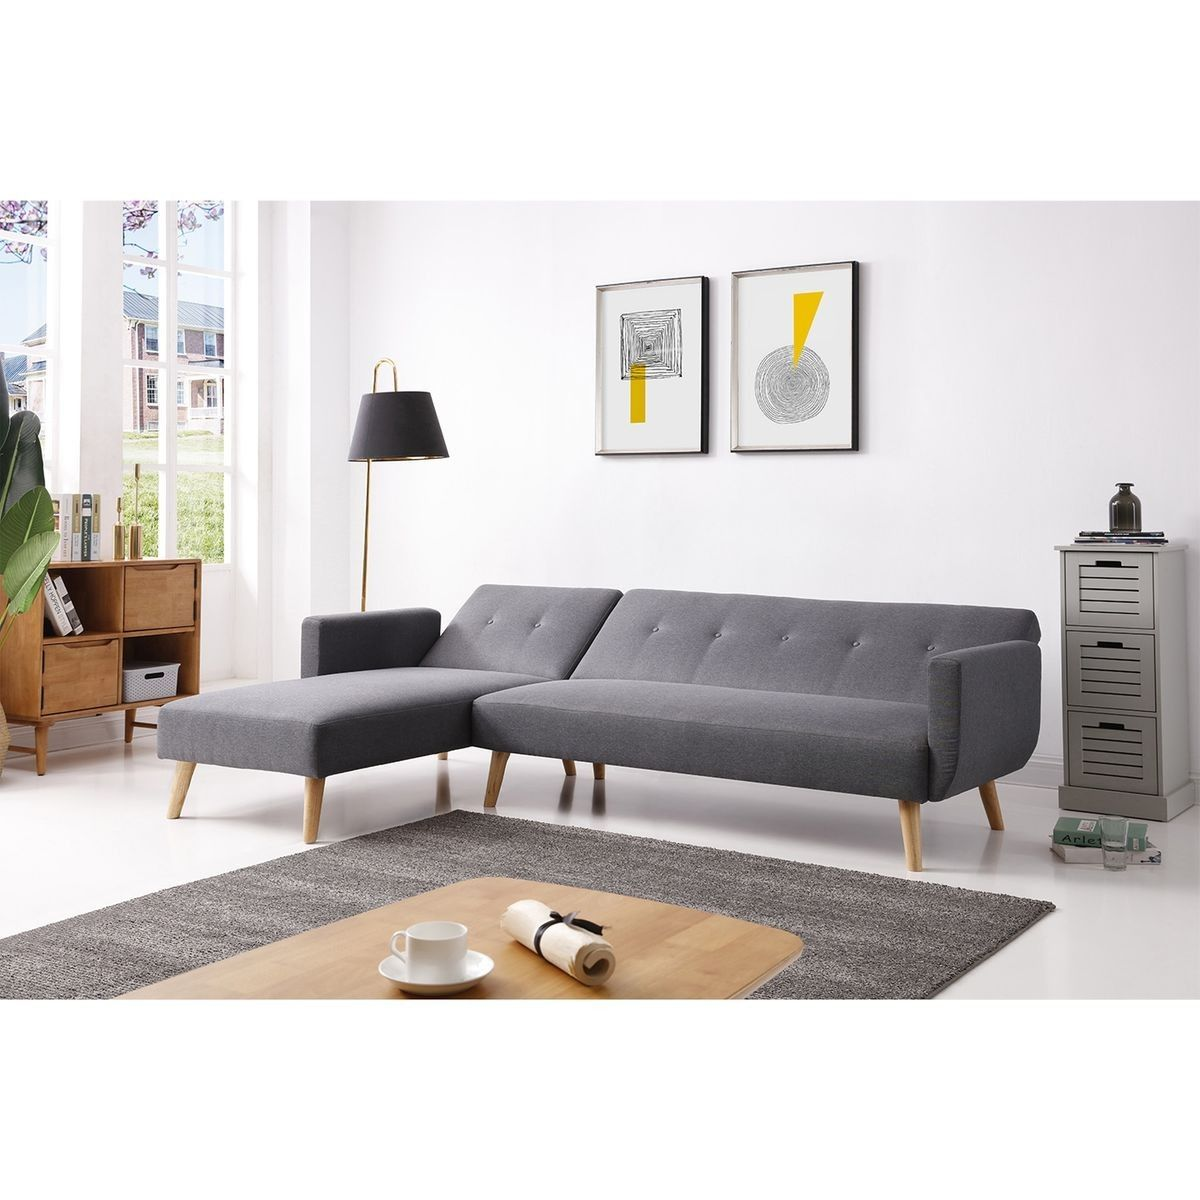 Canape D Angle Convertible 4 Places Style Scandinave Berlin Xl